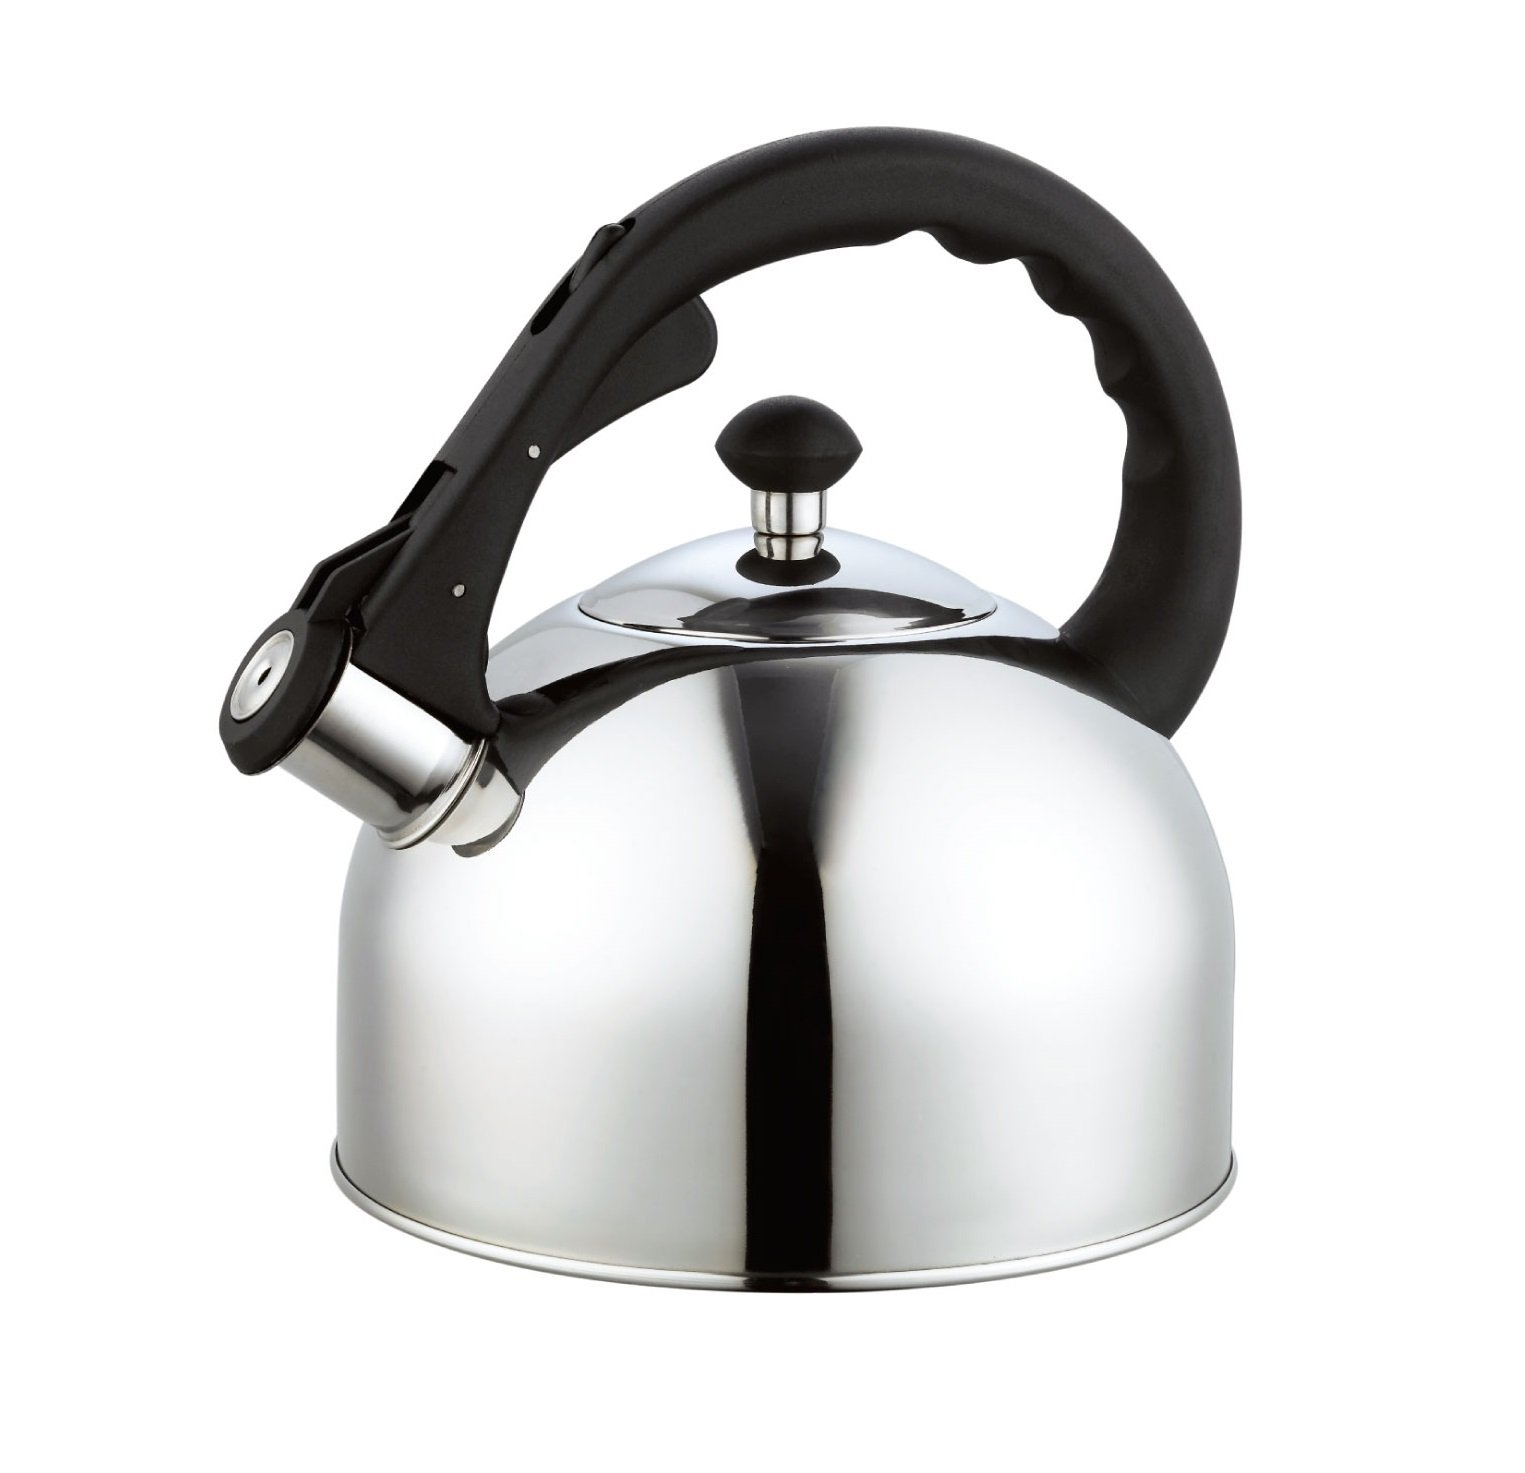 Homeinart Whistling Tea Kettle Stainless Tea Kettles Stovetop 2.6 QT by Homeinart (Image #1)